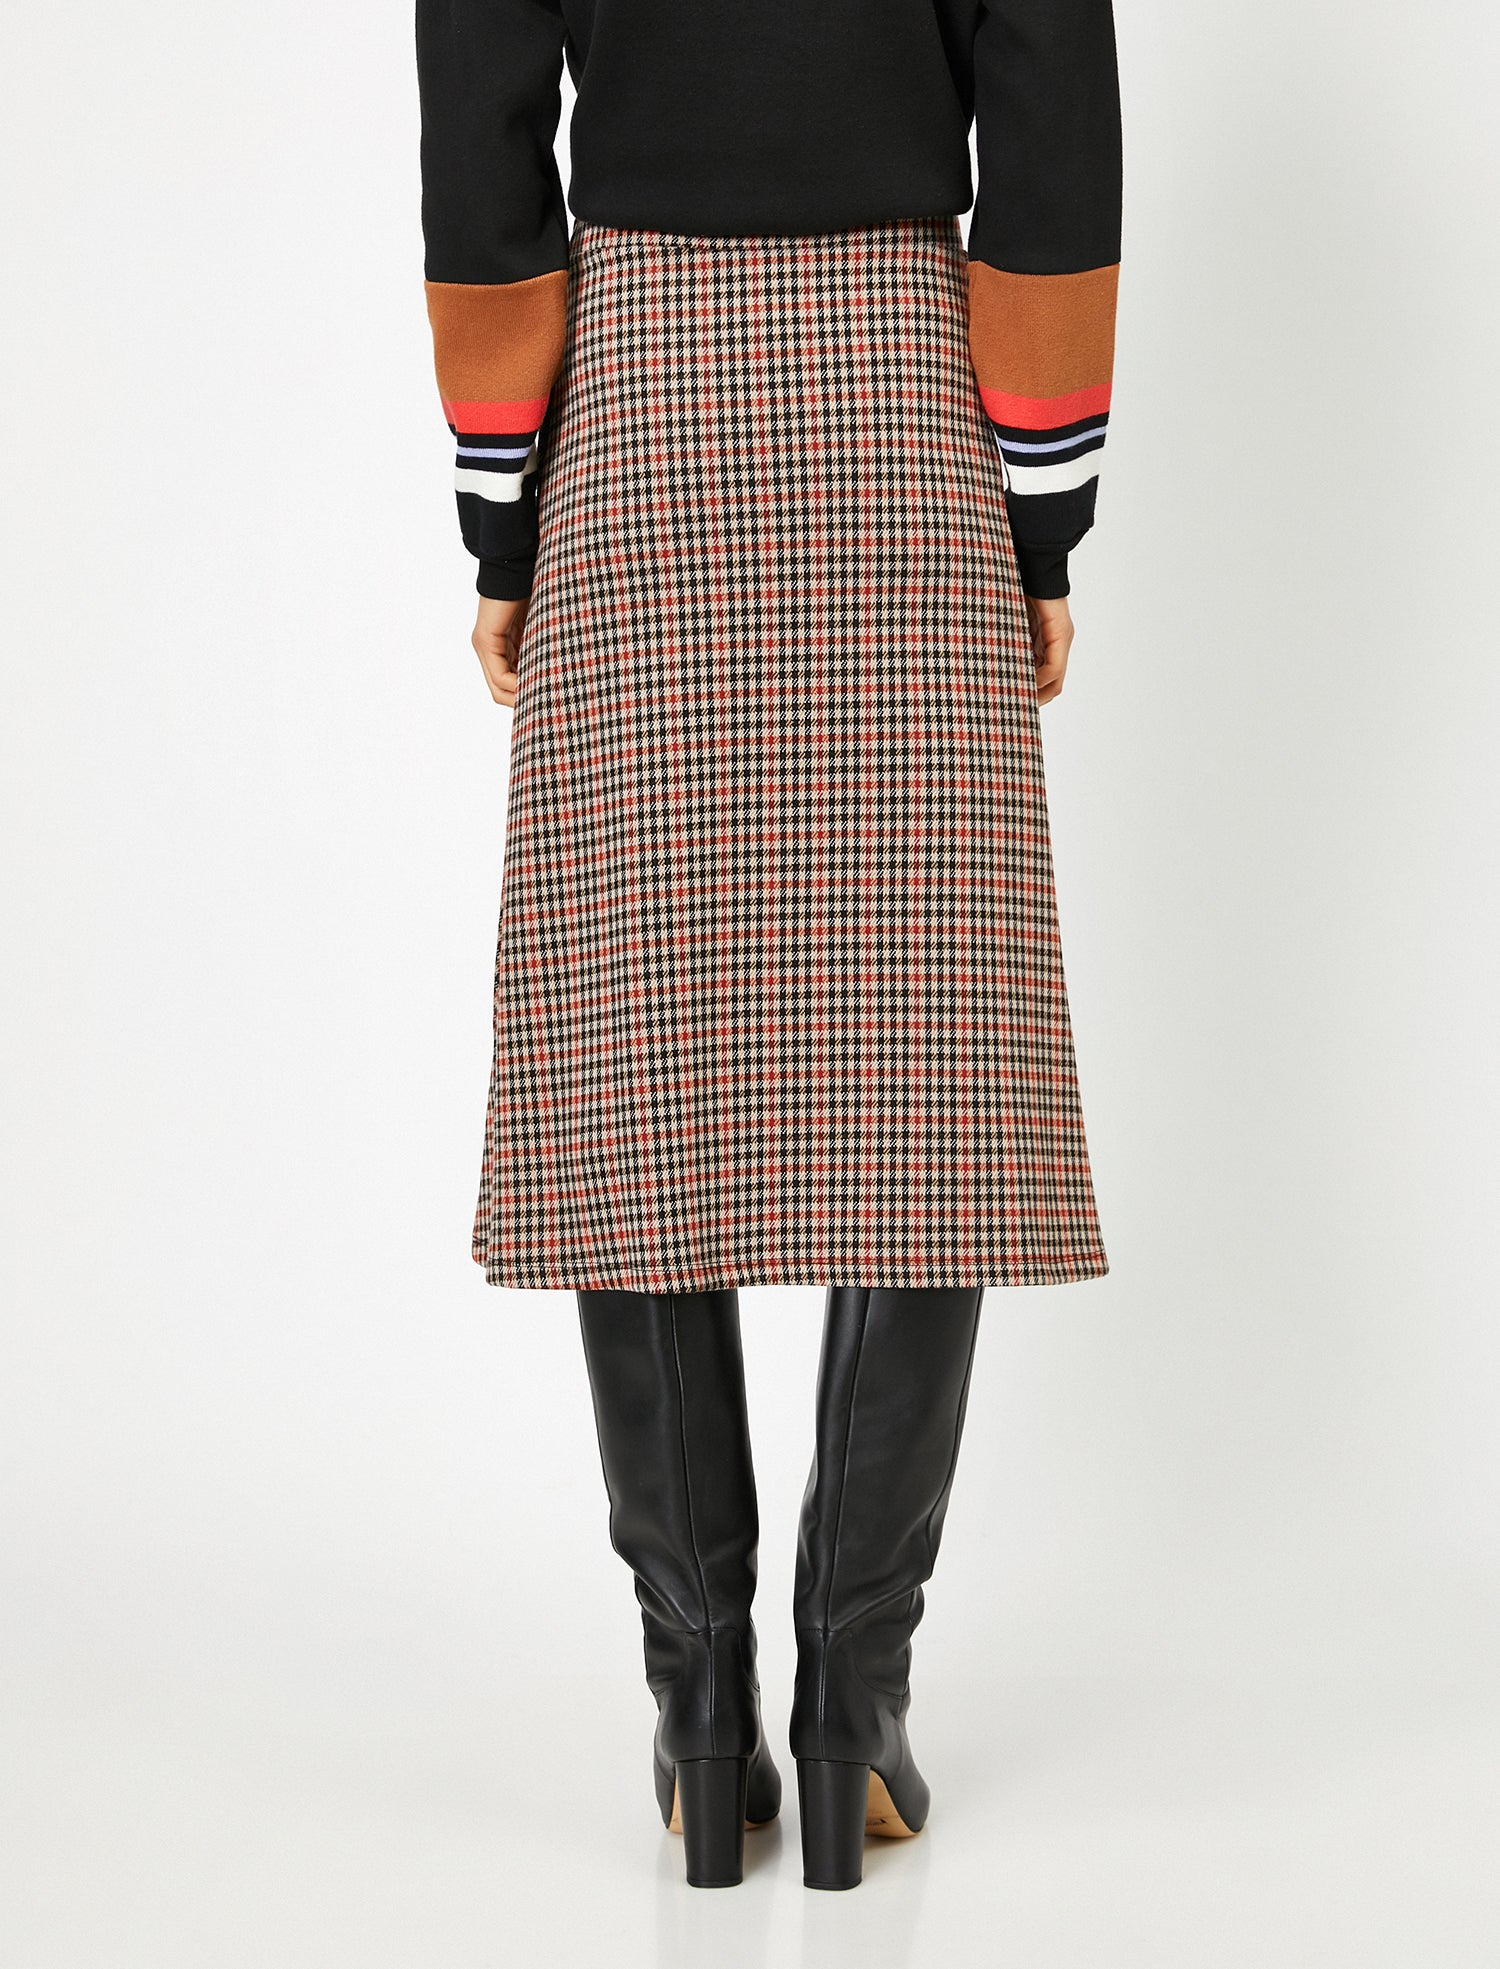 Mini-Check A-Line Skirt in Red